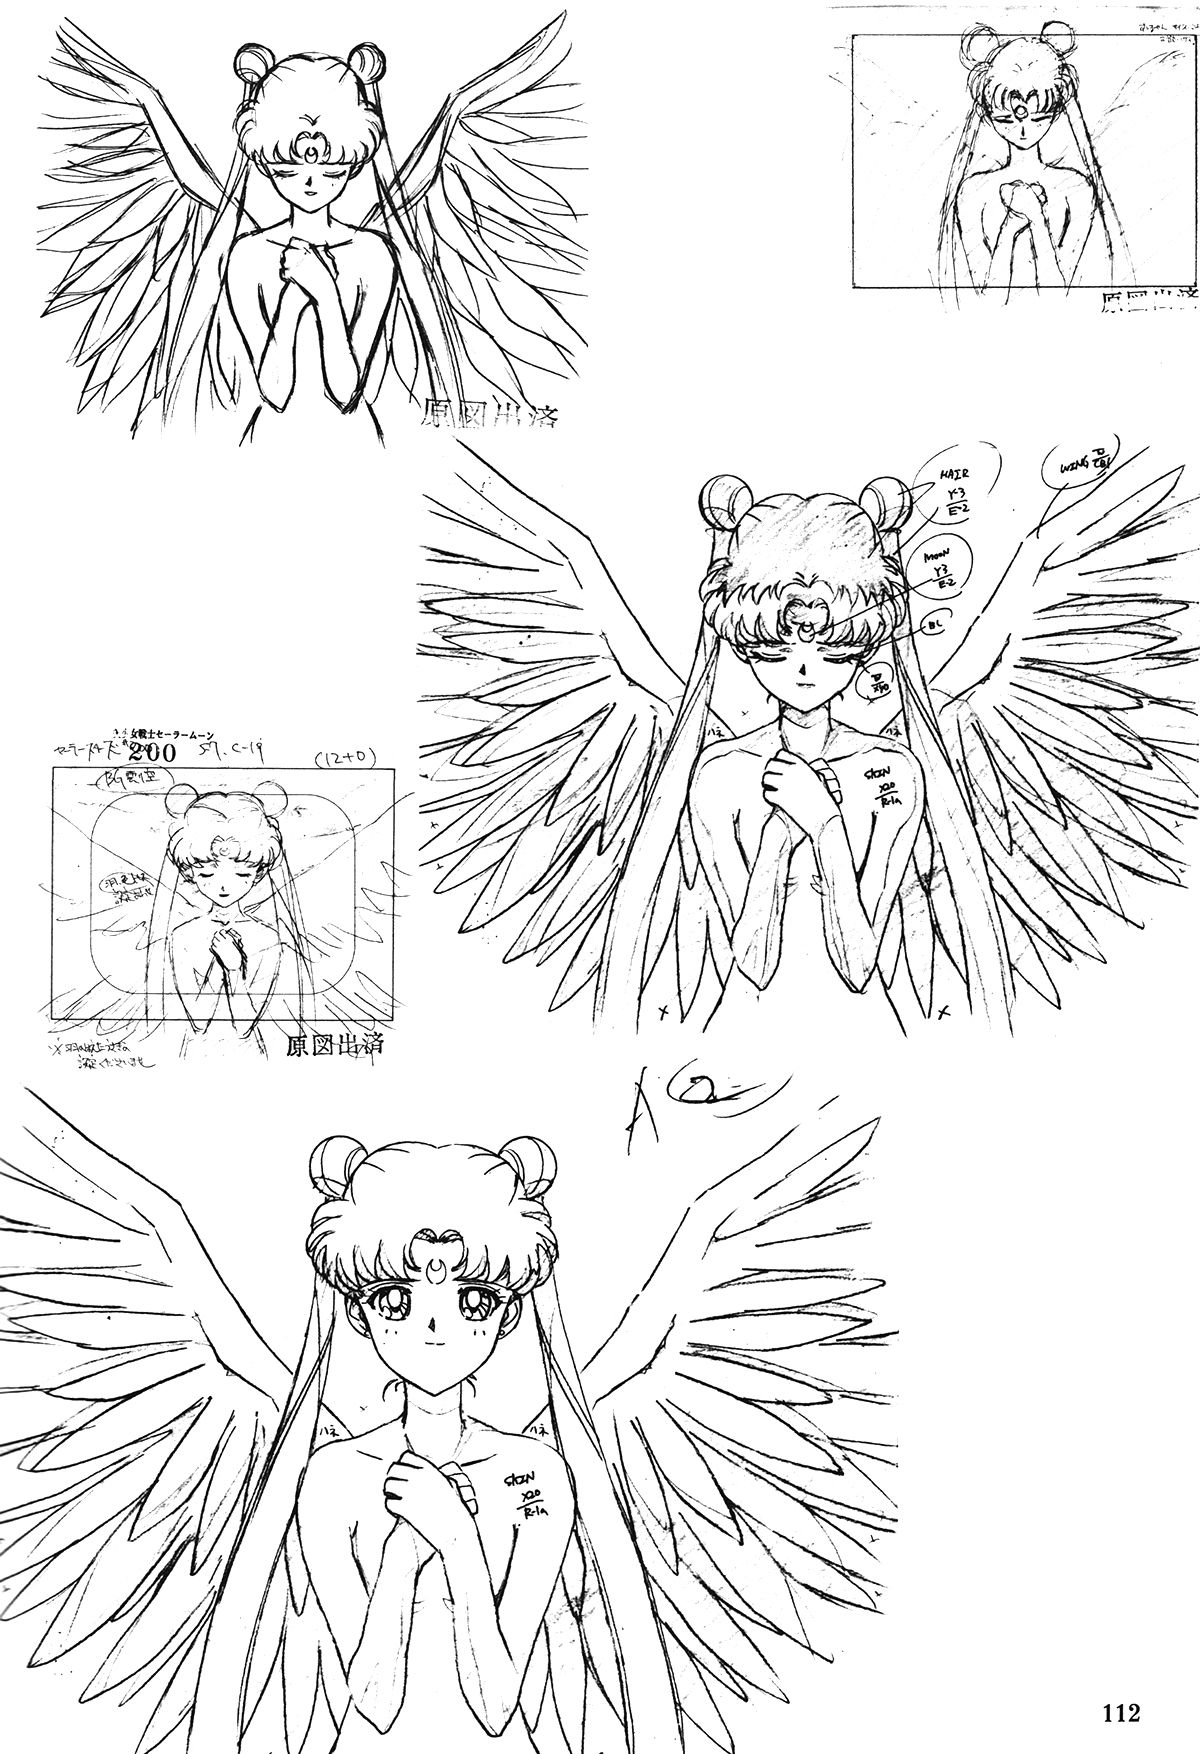 Animation sketches of Princess Serenity with angel wings from ...